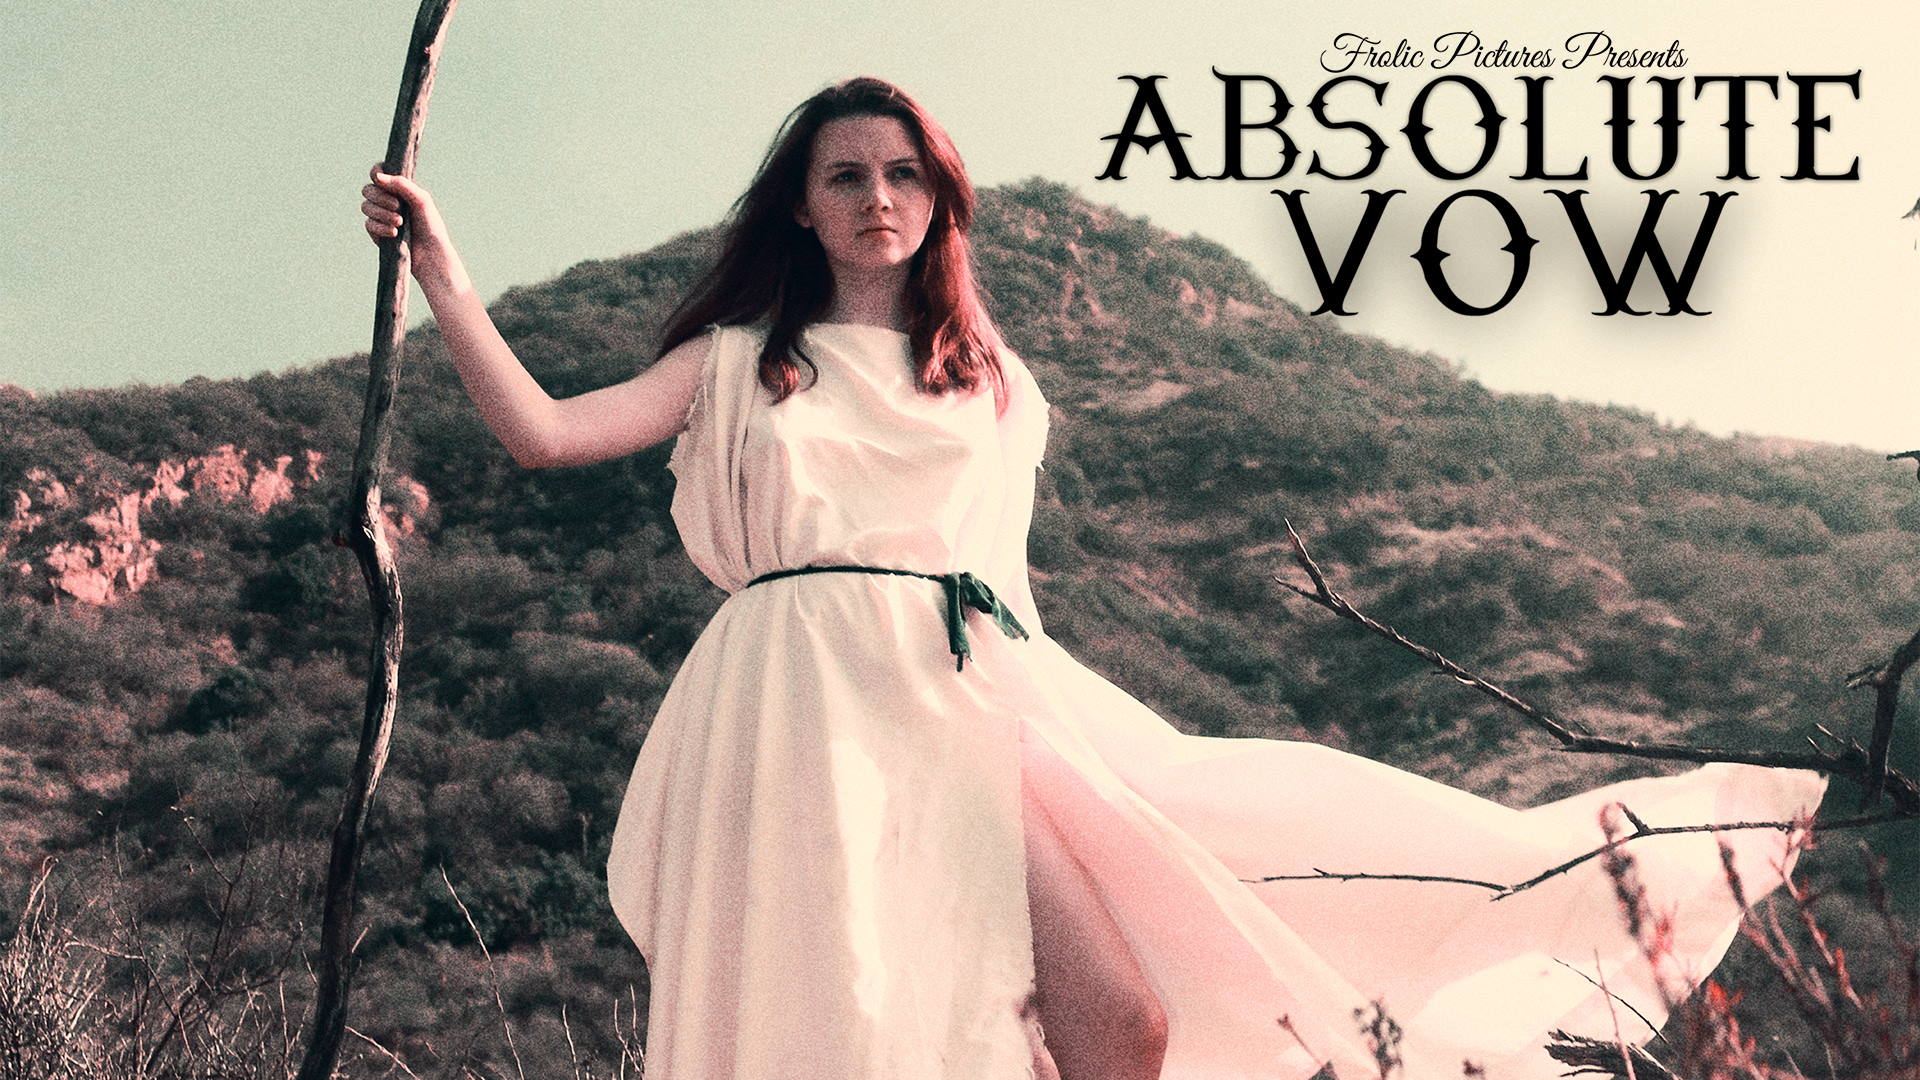 Absolute Vow